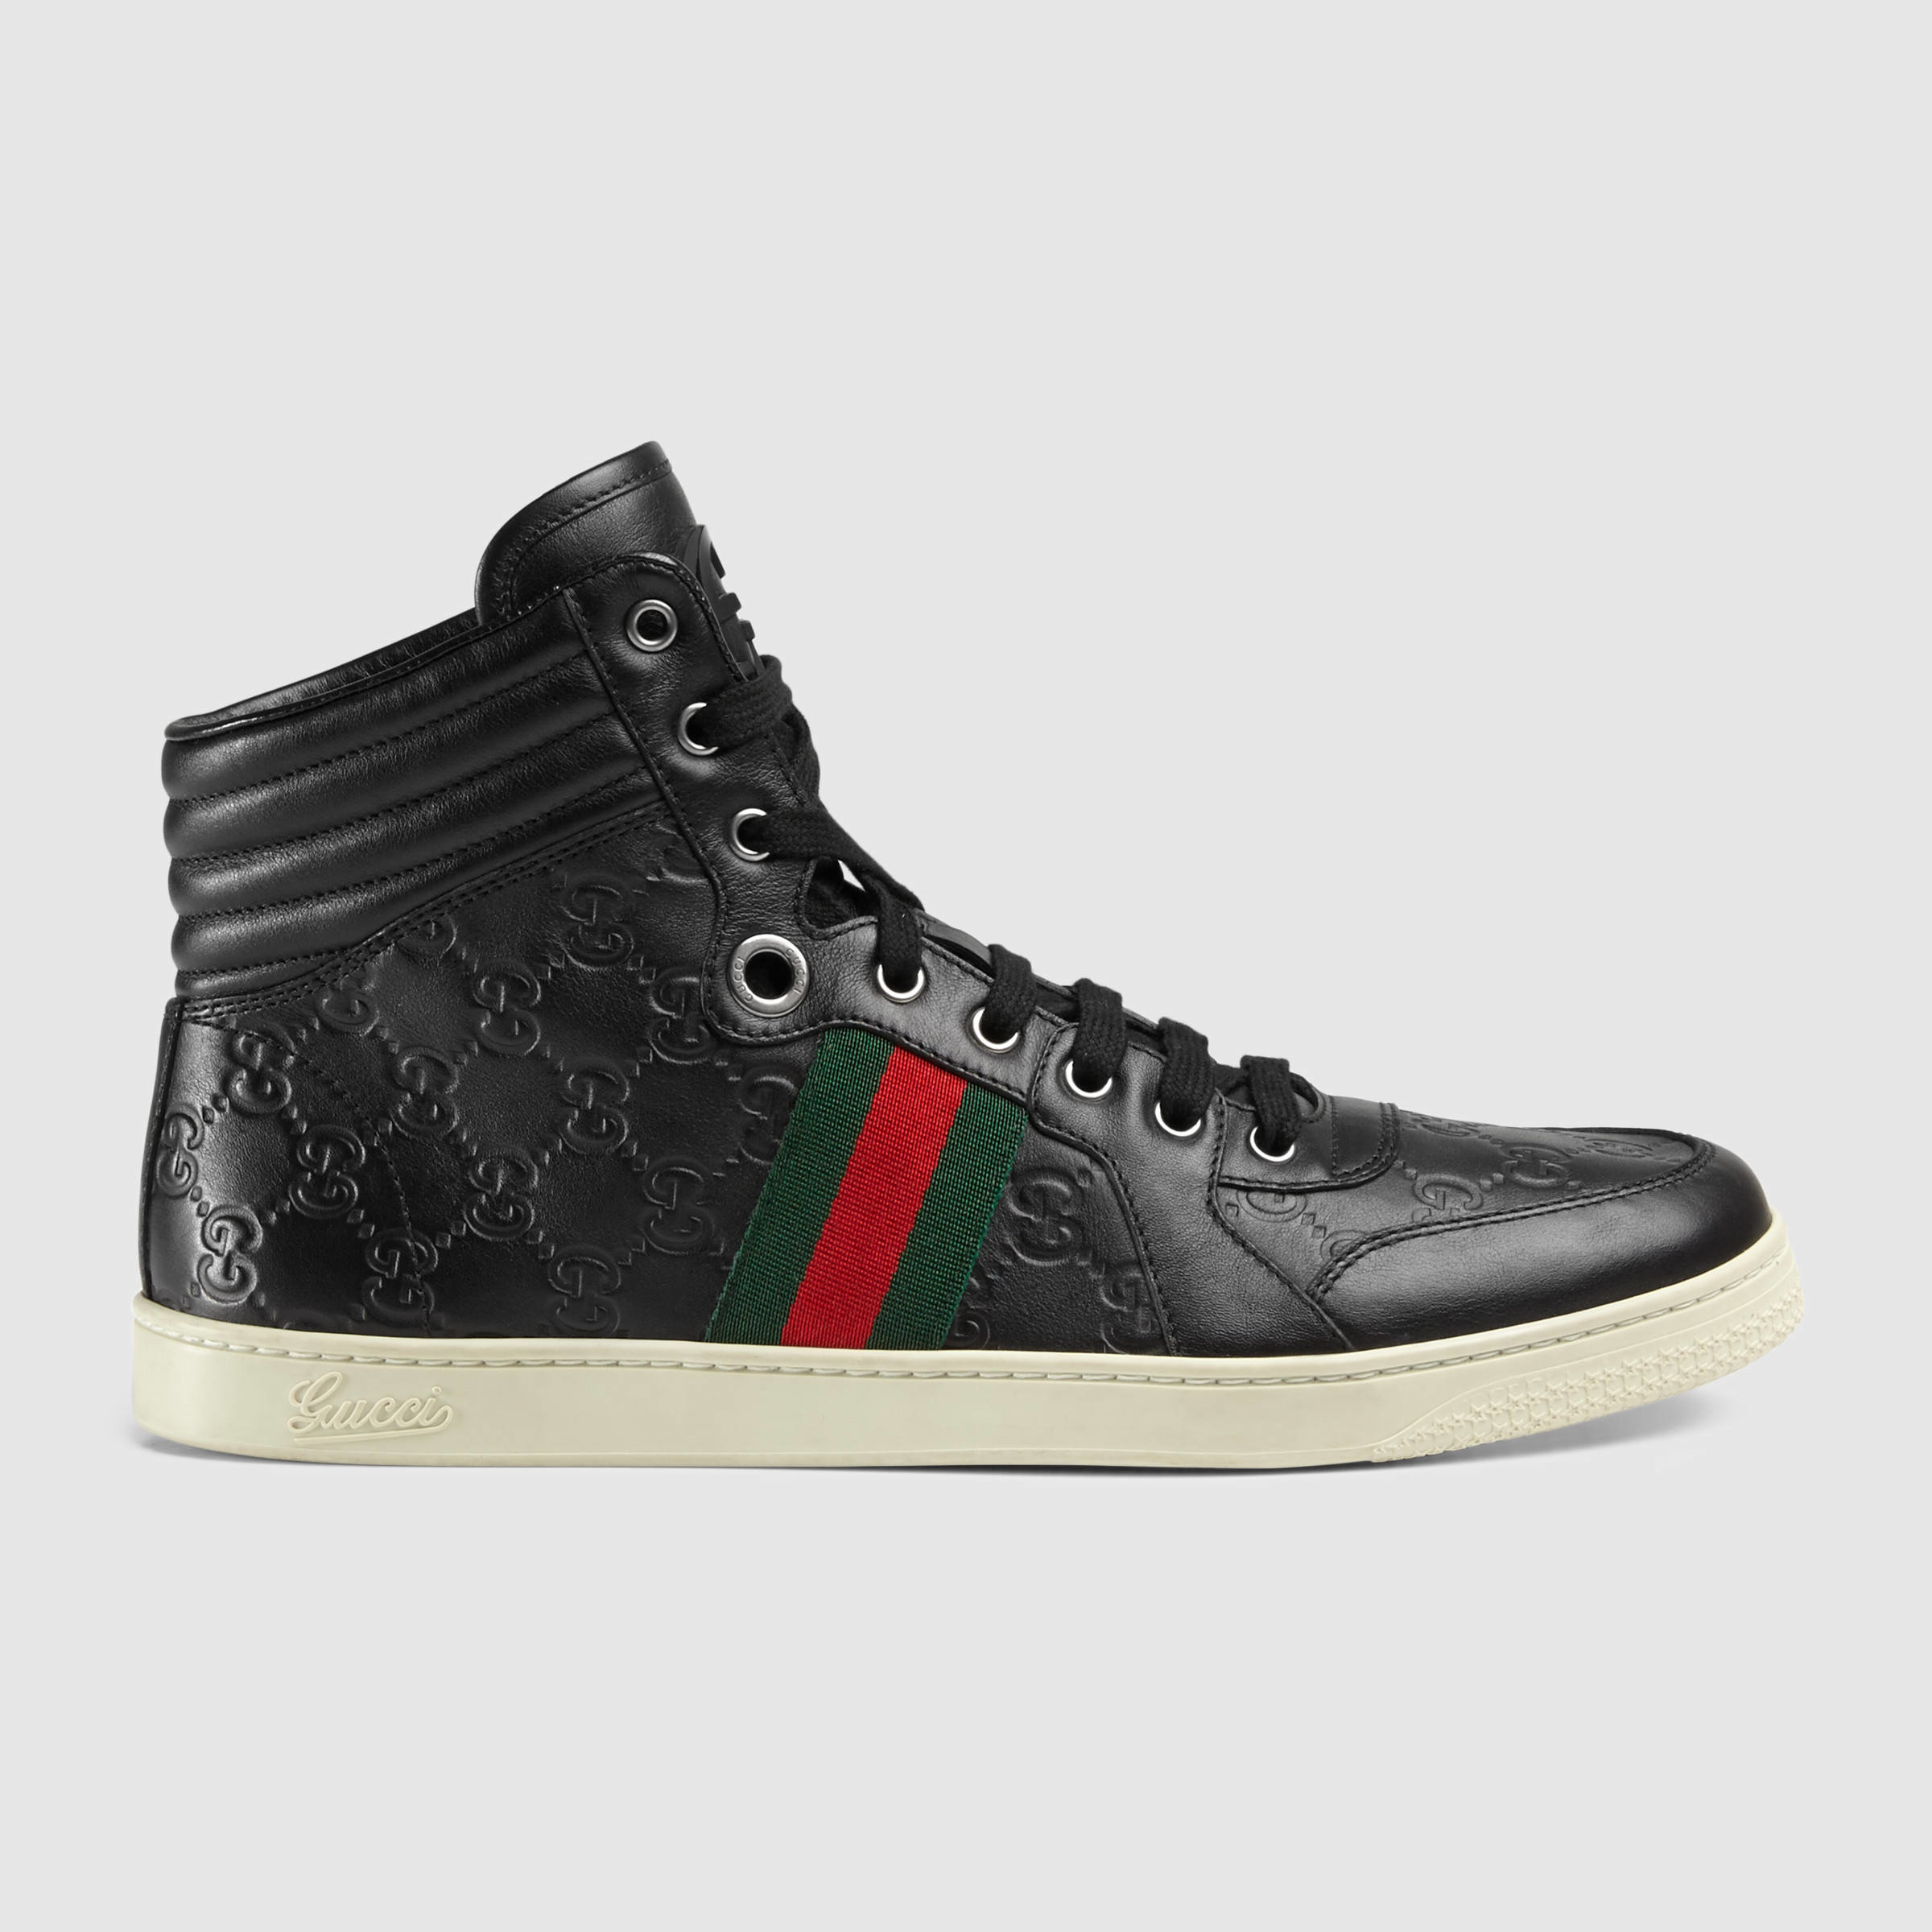 gucci ssima leather high top sneaker in black for men lyst. Black Bedroom Furniture Sets. Home Design Ideas